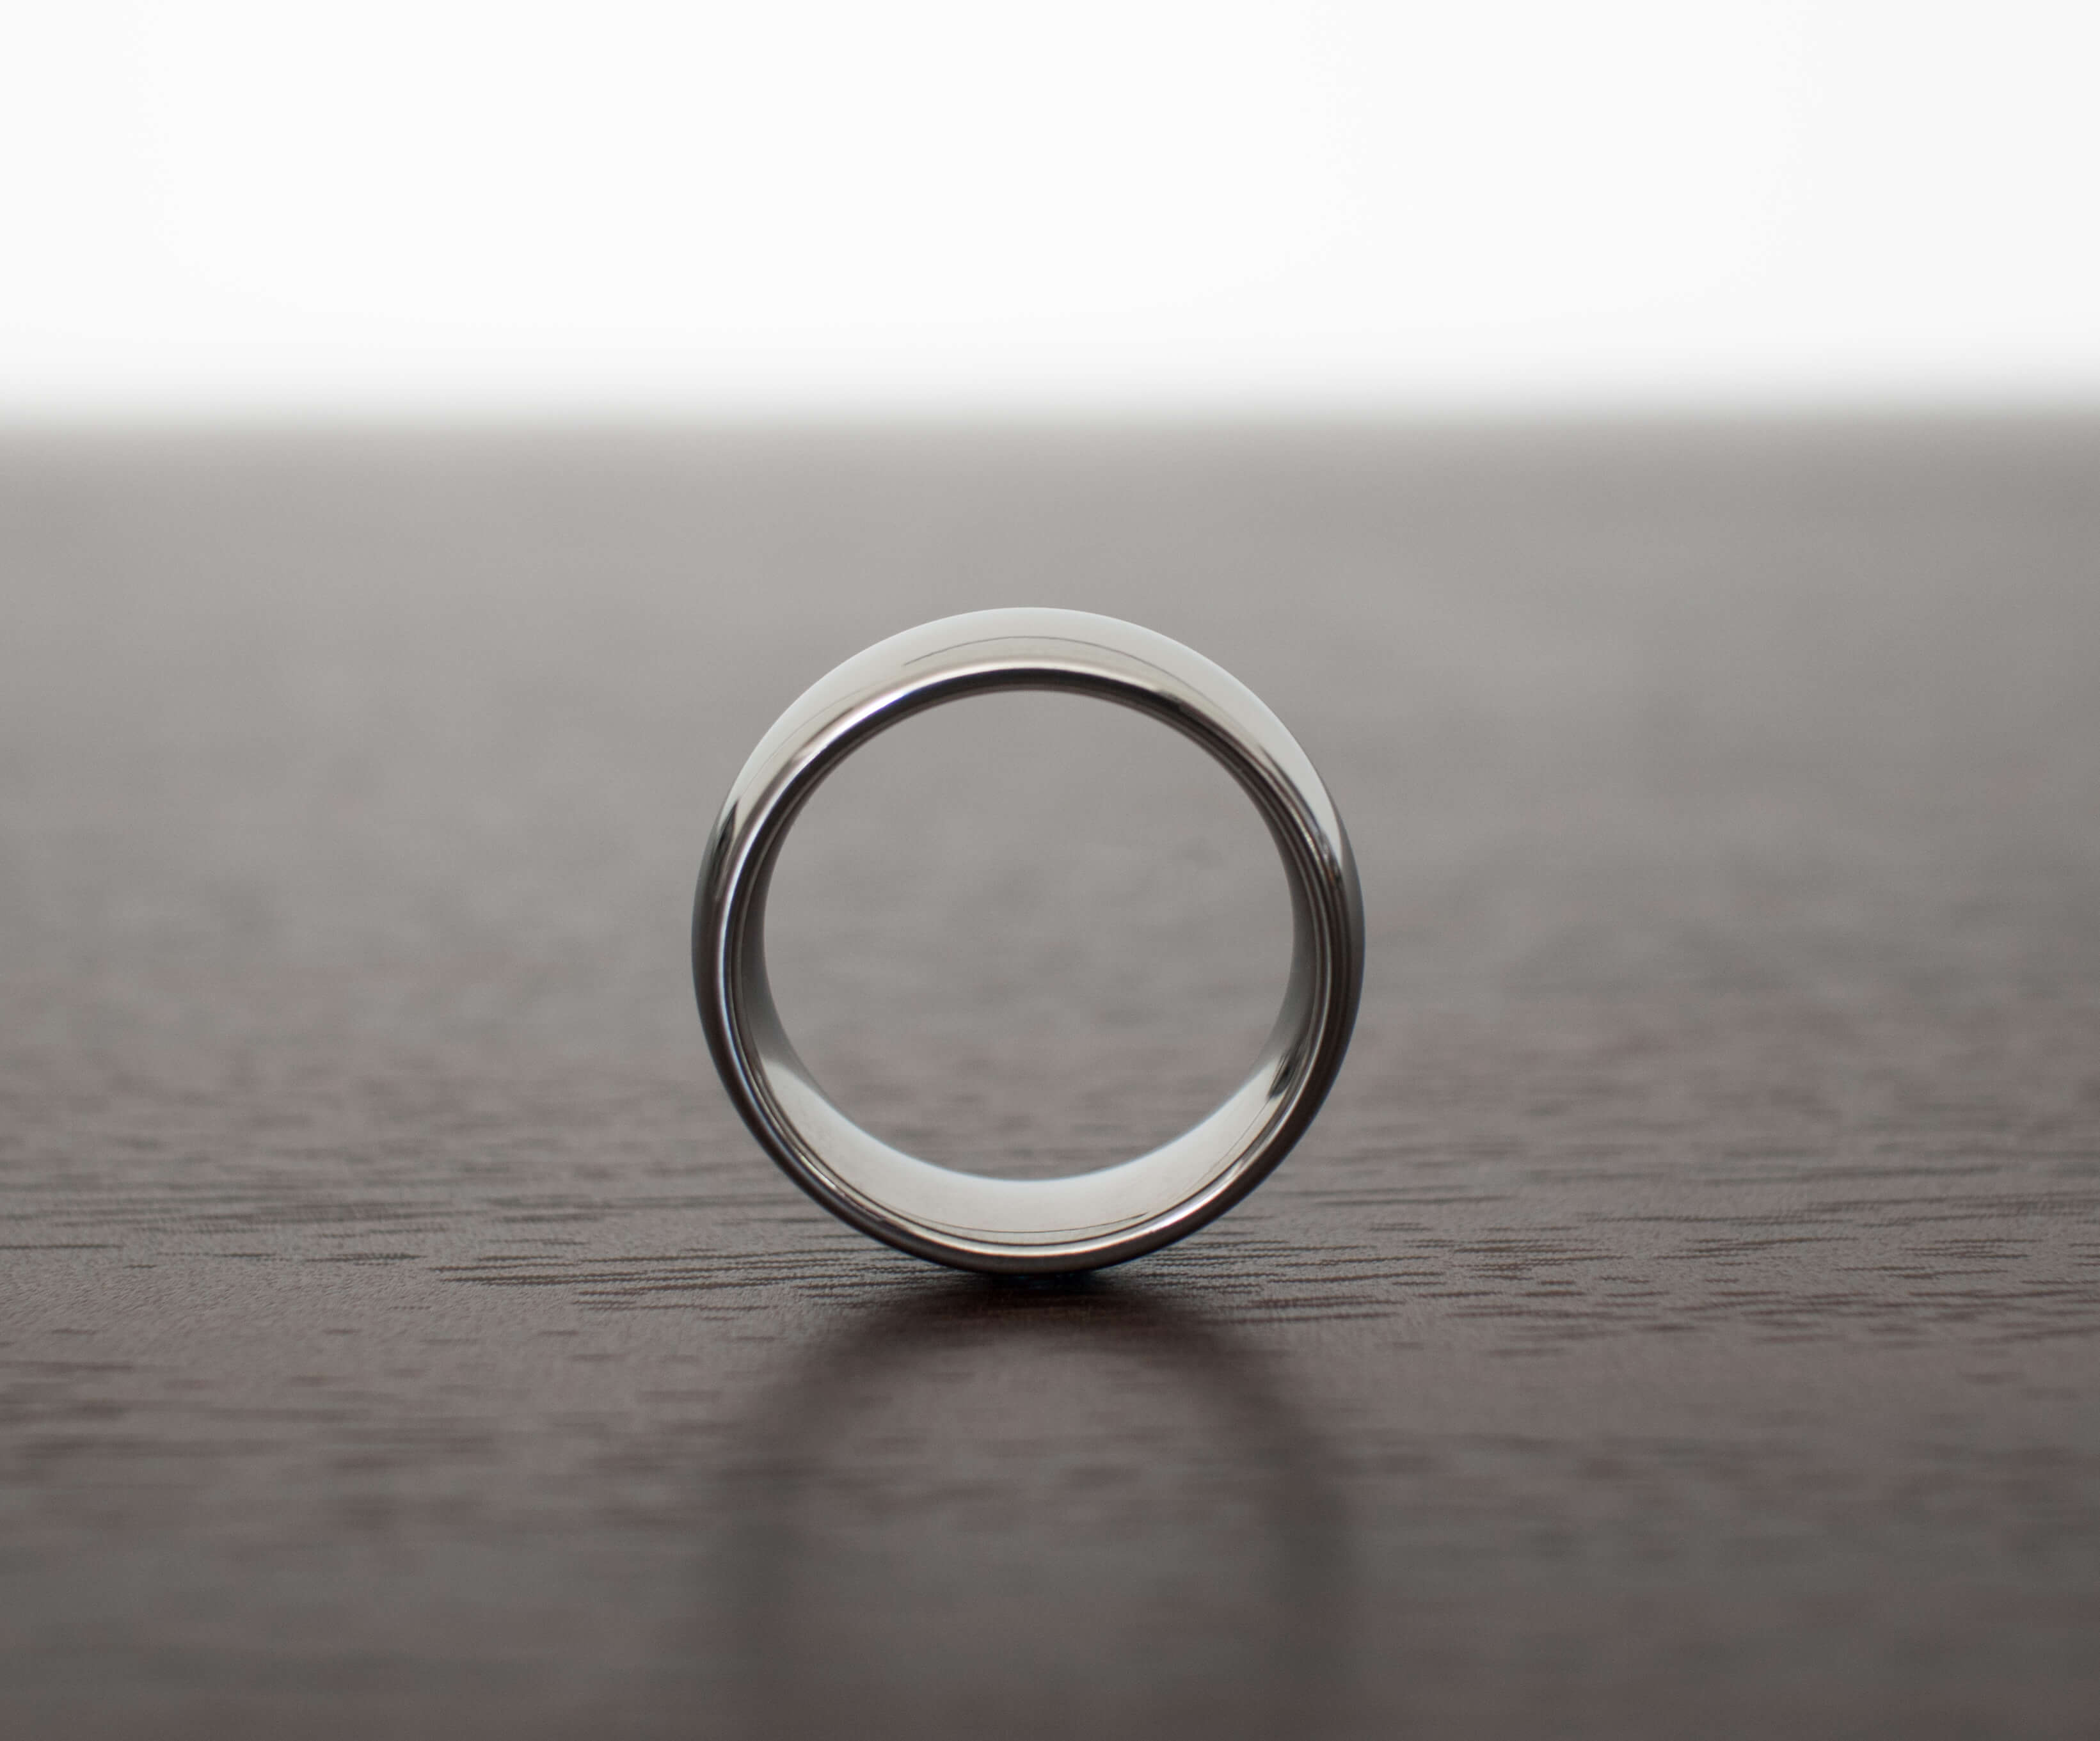 classic-silver-wedding-band-for-men-on-table-with-side-view